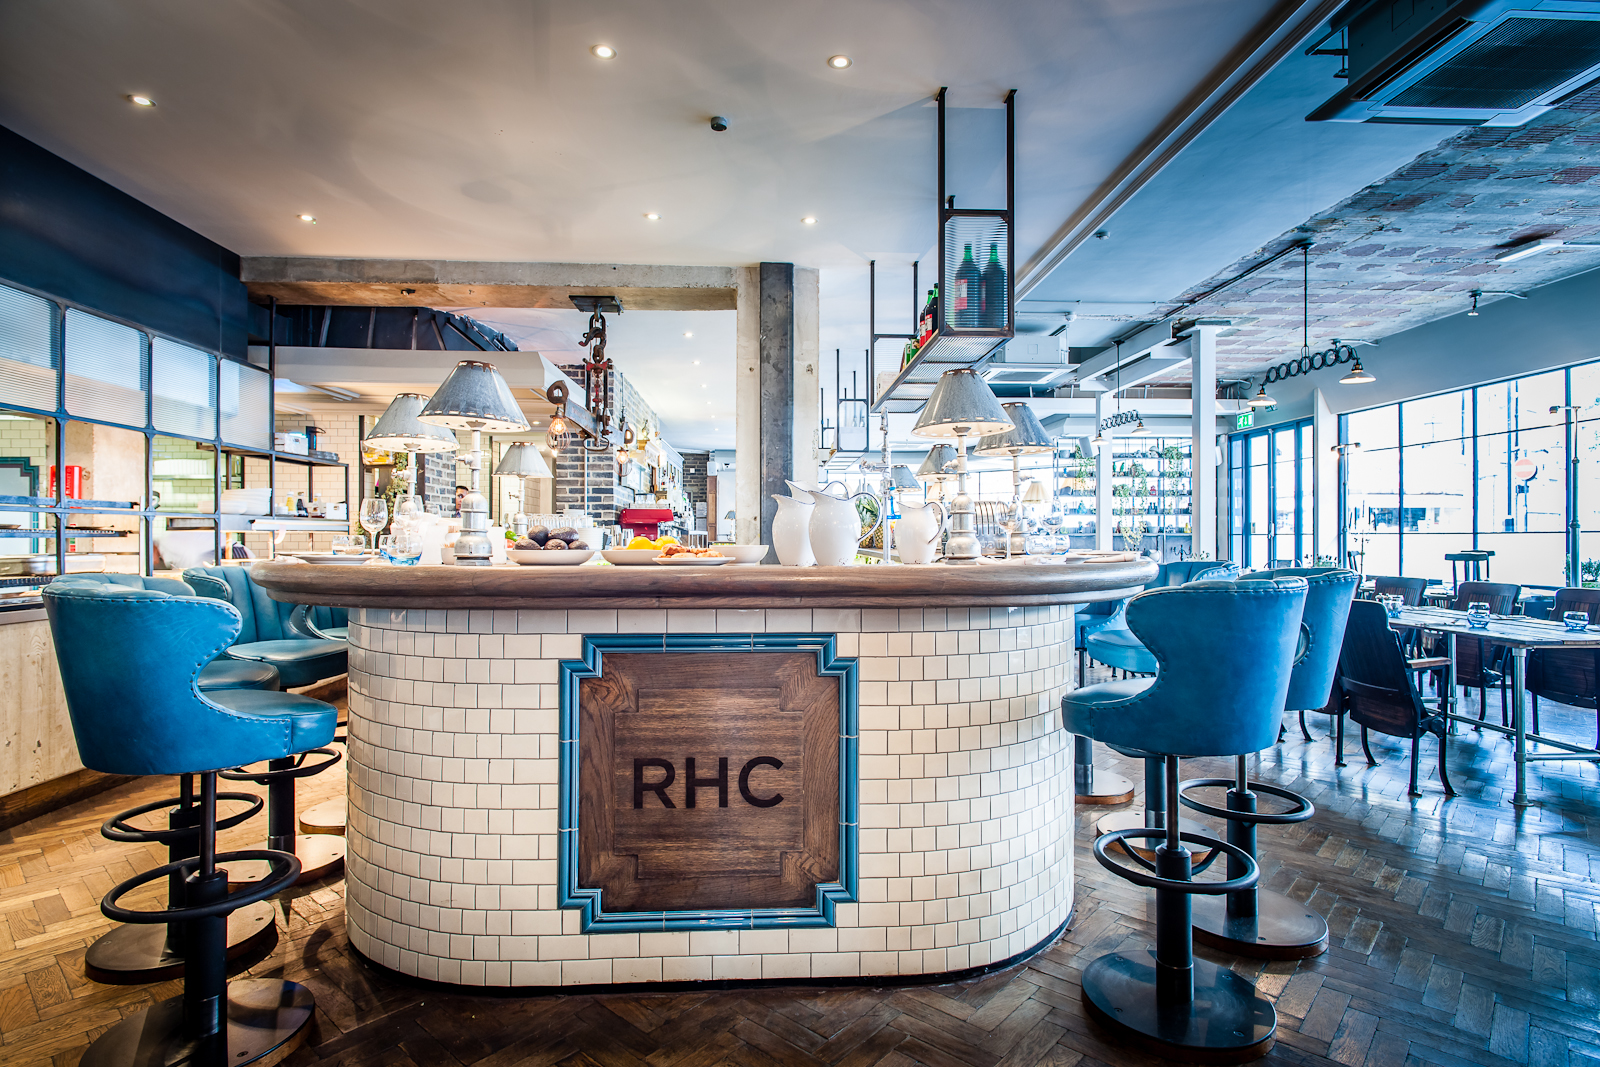 The Riding House Café: A Work-Friendly Place in London